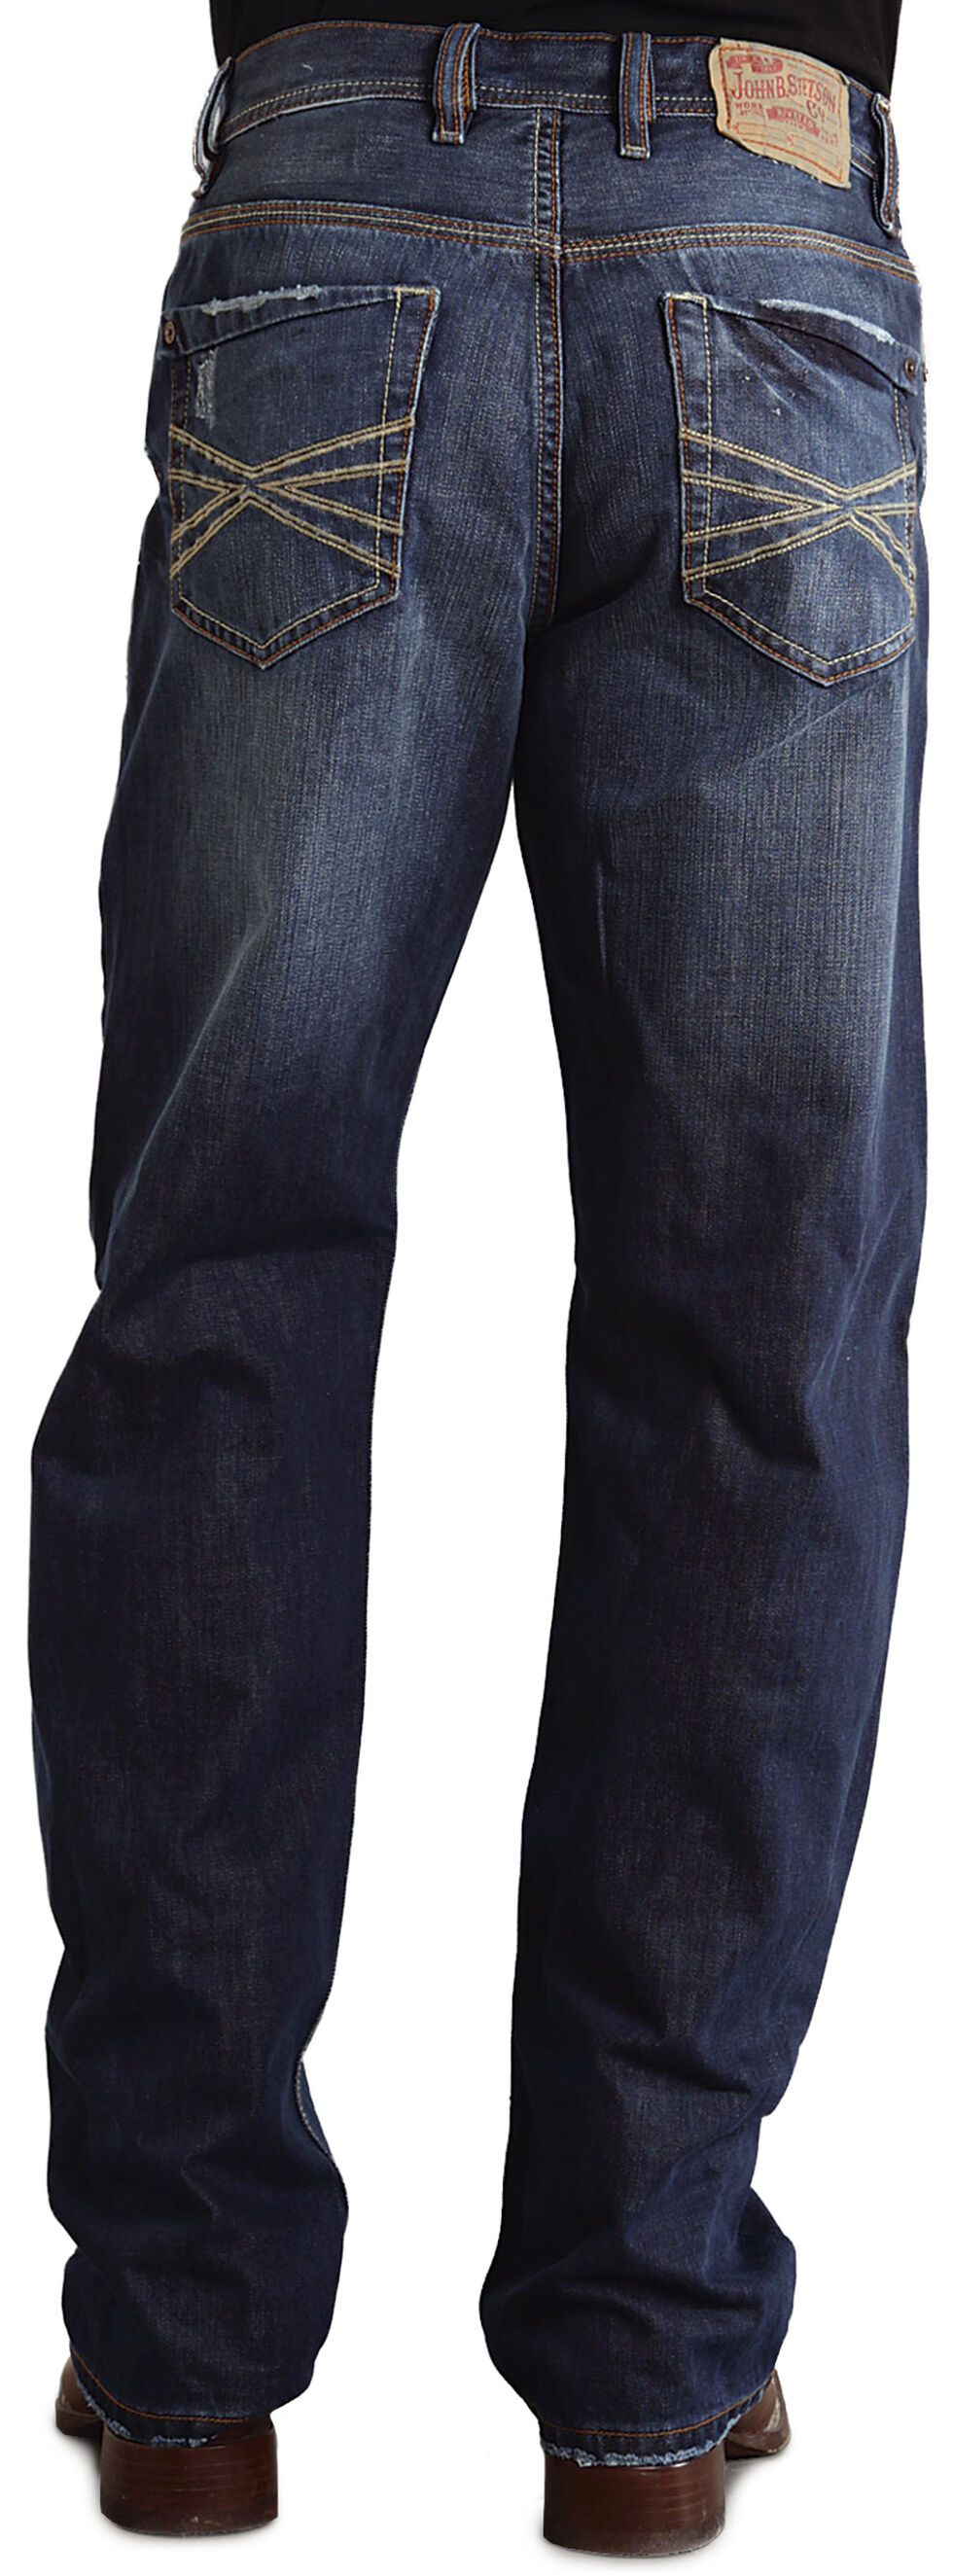 "Stetson 1520 Fit Contrasting ""X"" Stitched Jeans, Dark Stone, hi-res"